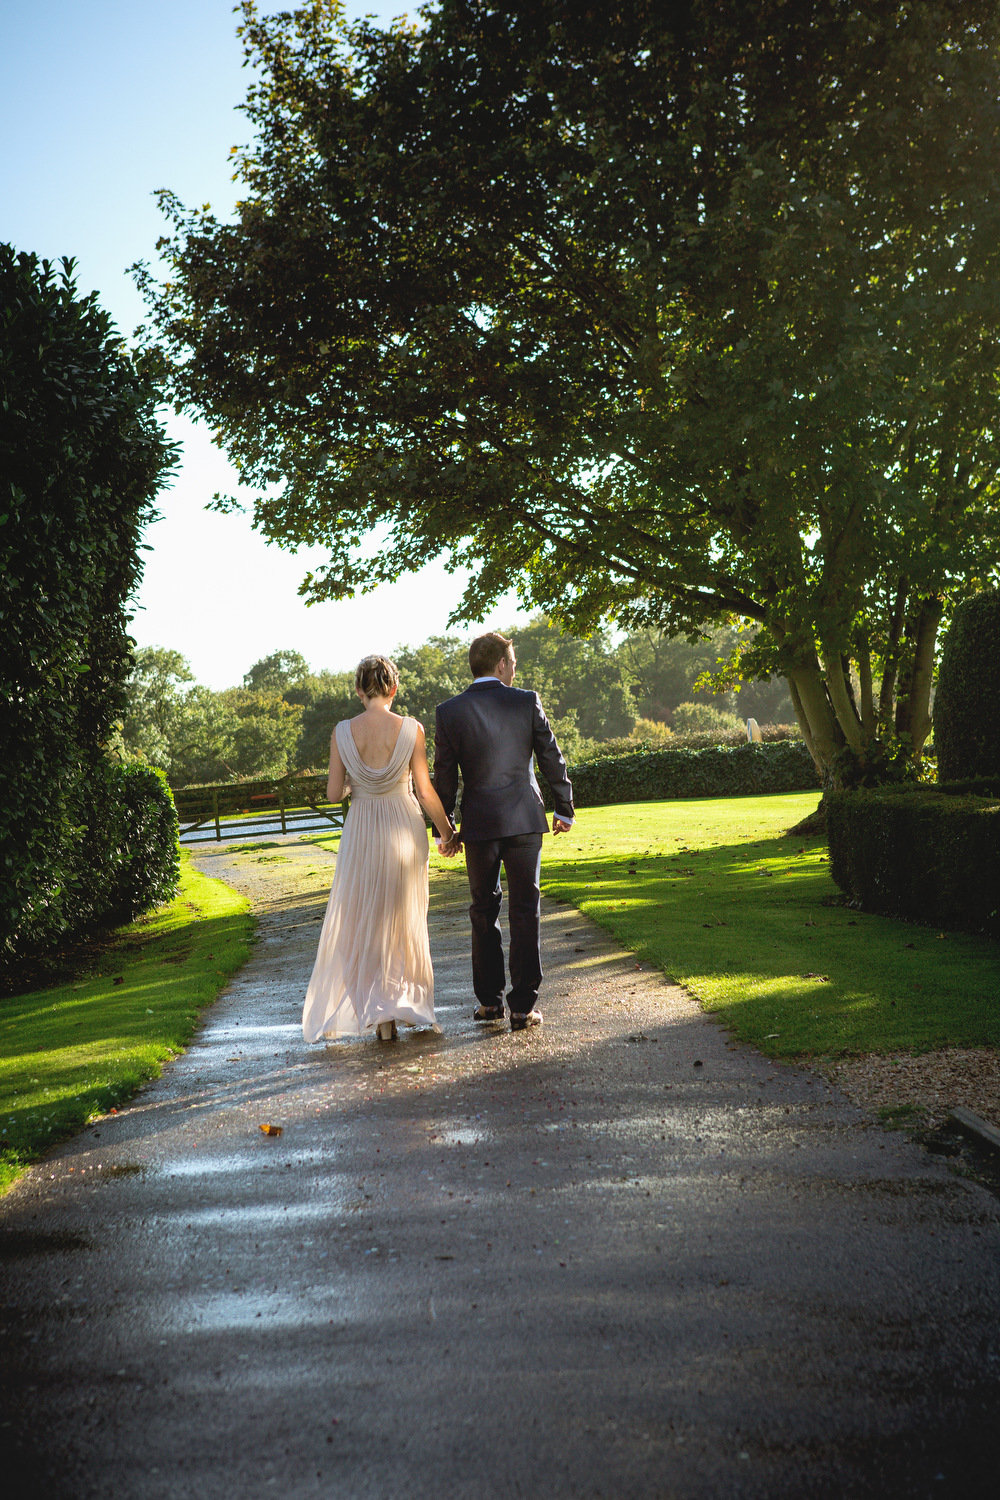 charnwood_weddings_barnsdale_lodge_rutland_dave_j81ane.JPG